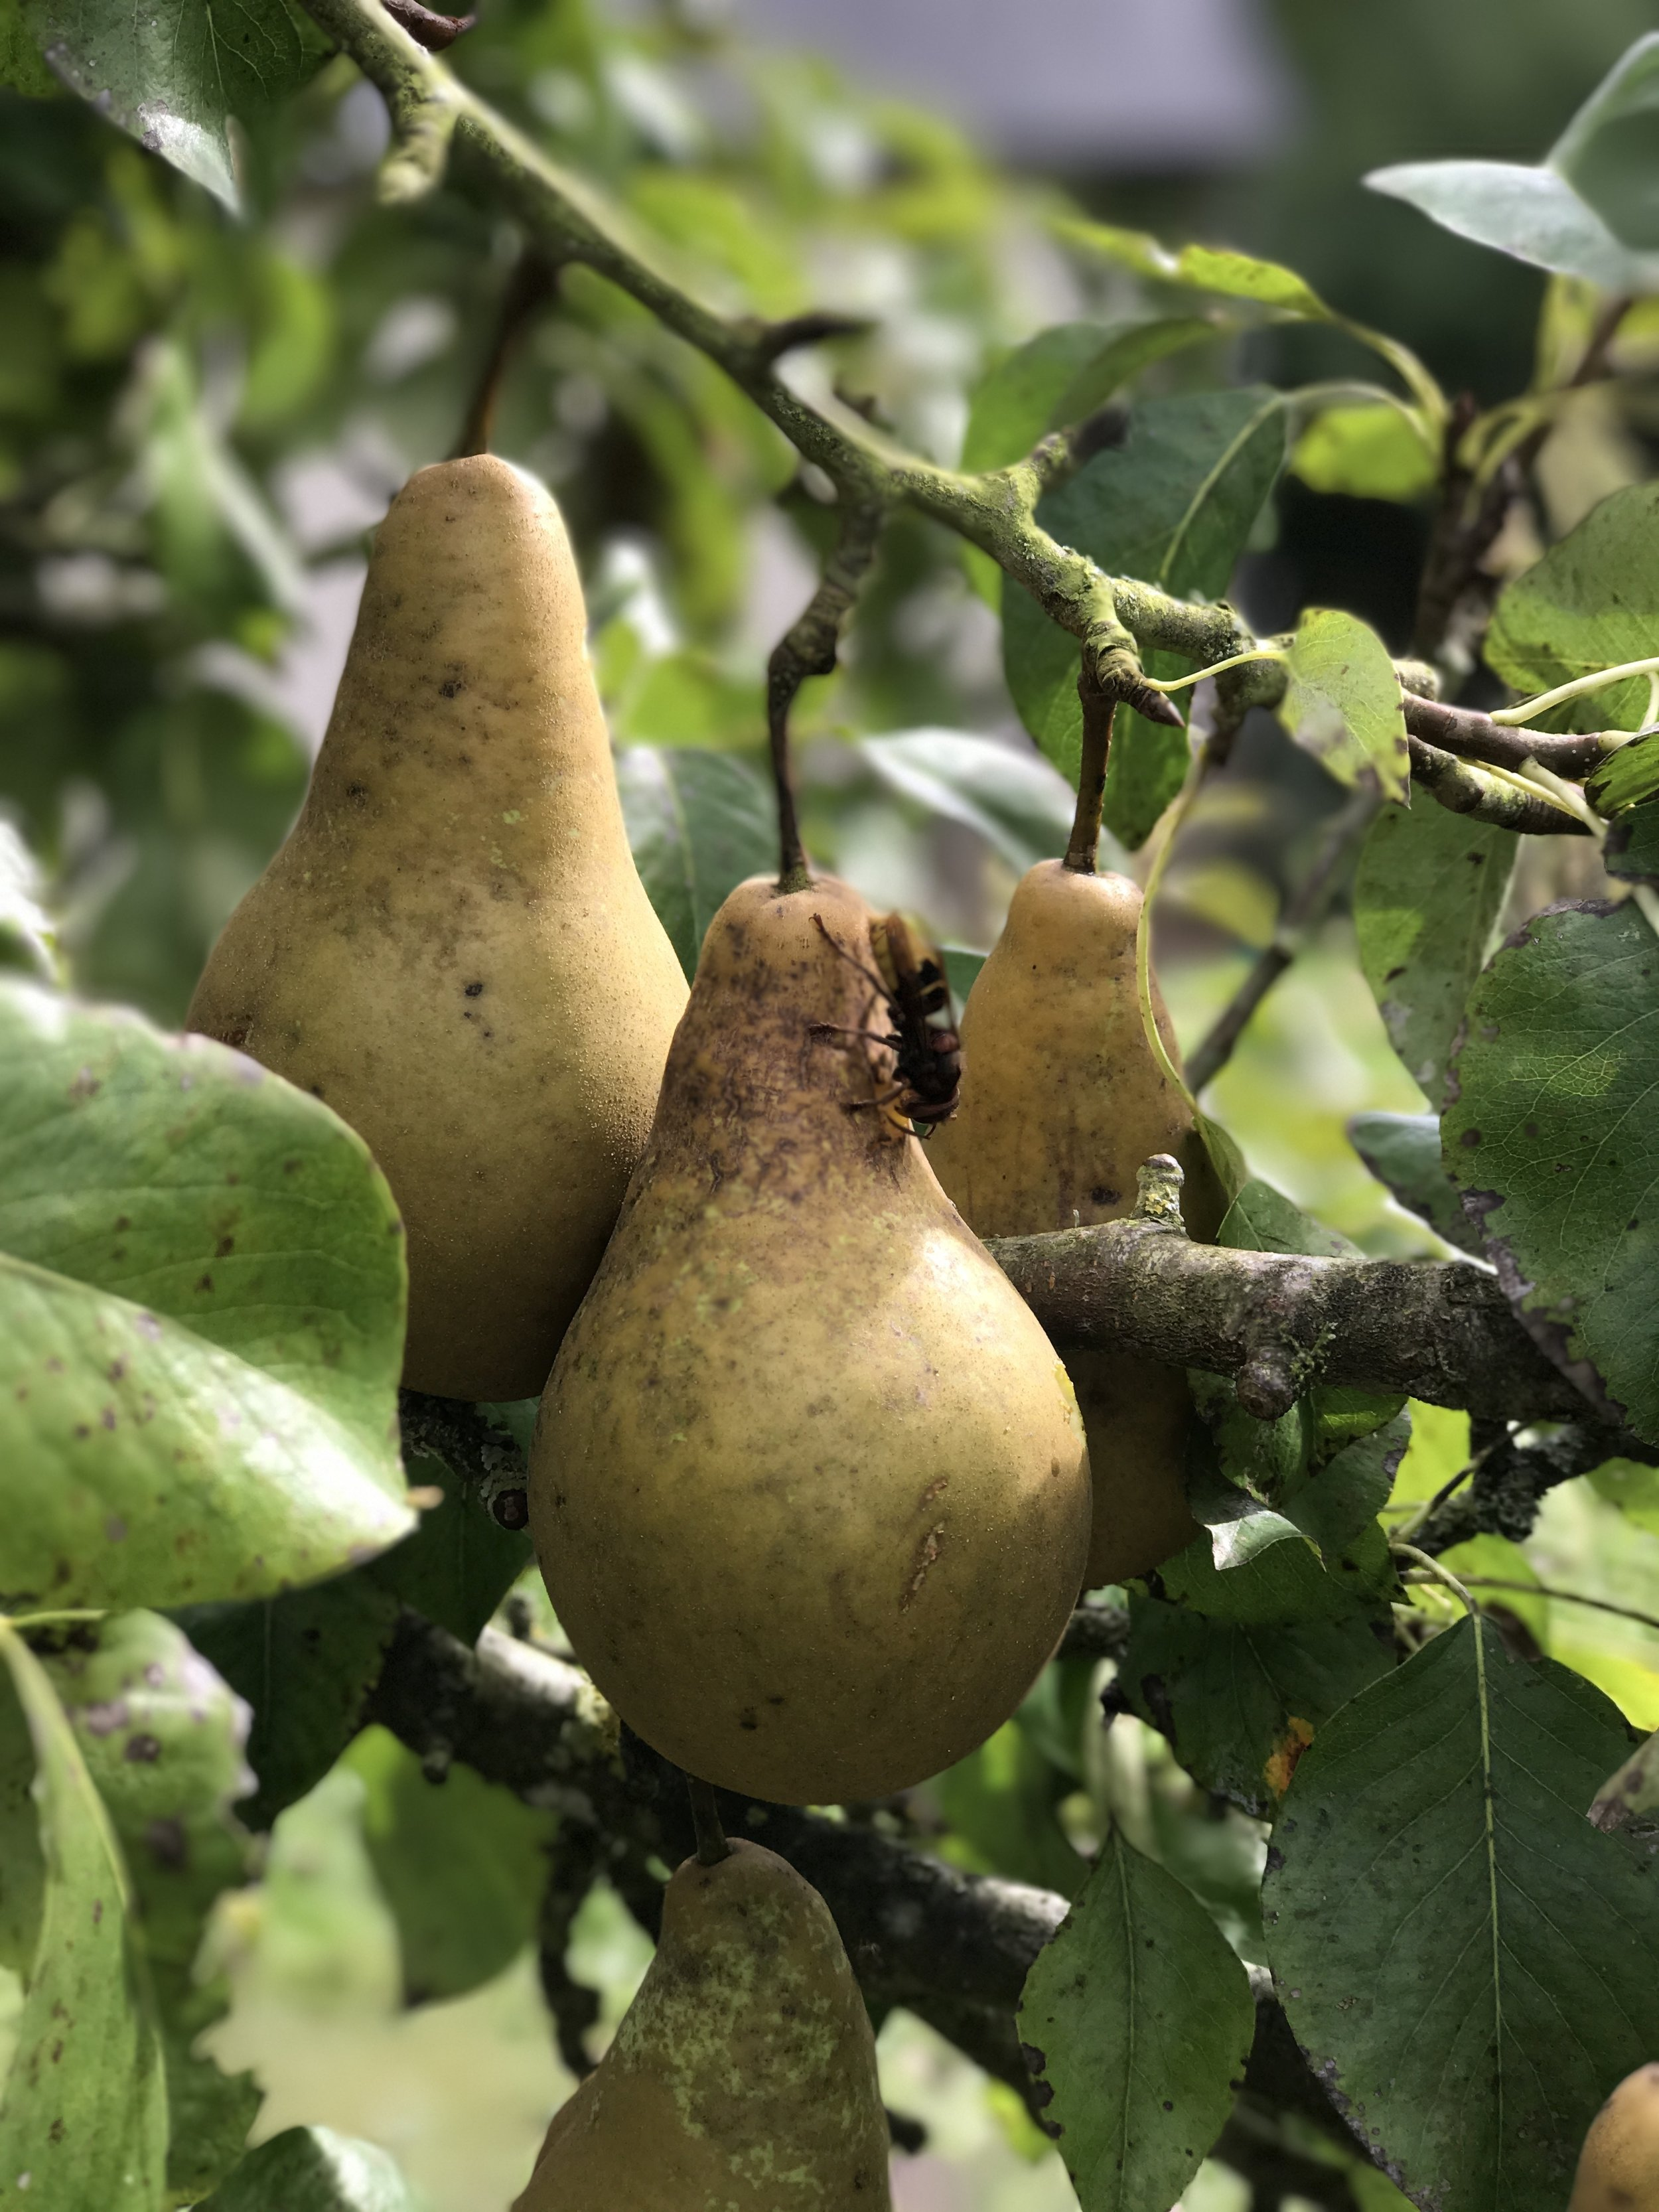 An abundant harvest of pears and apples this summer.